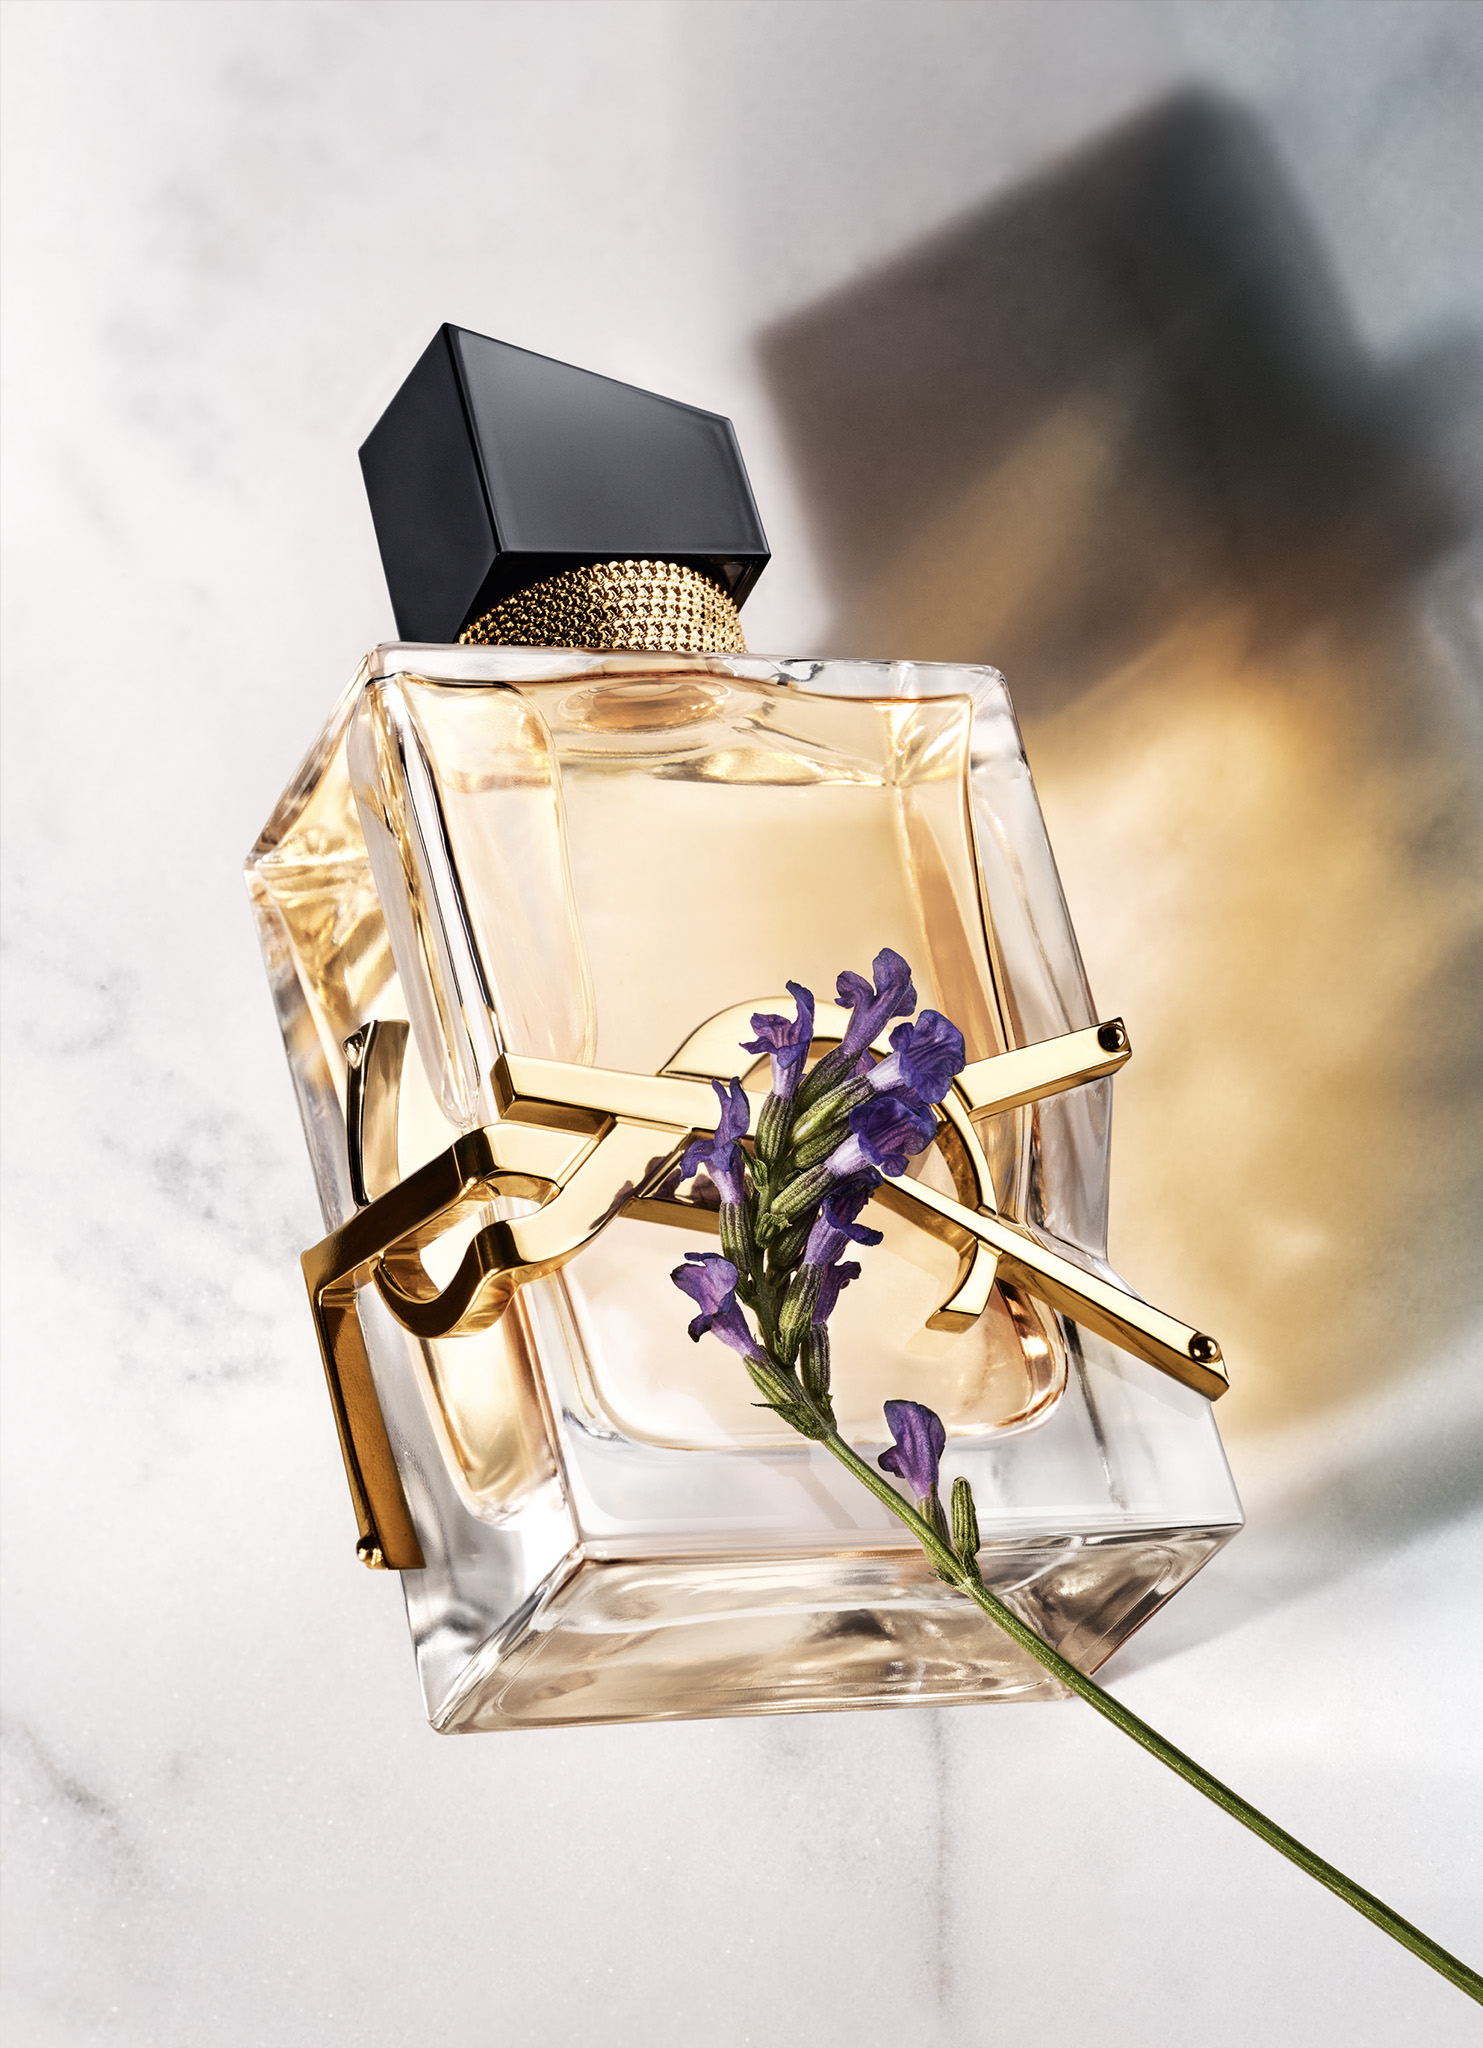 YSL Parfume bottle for brand page featured images.